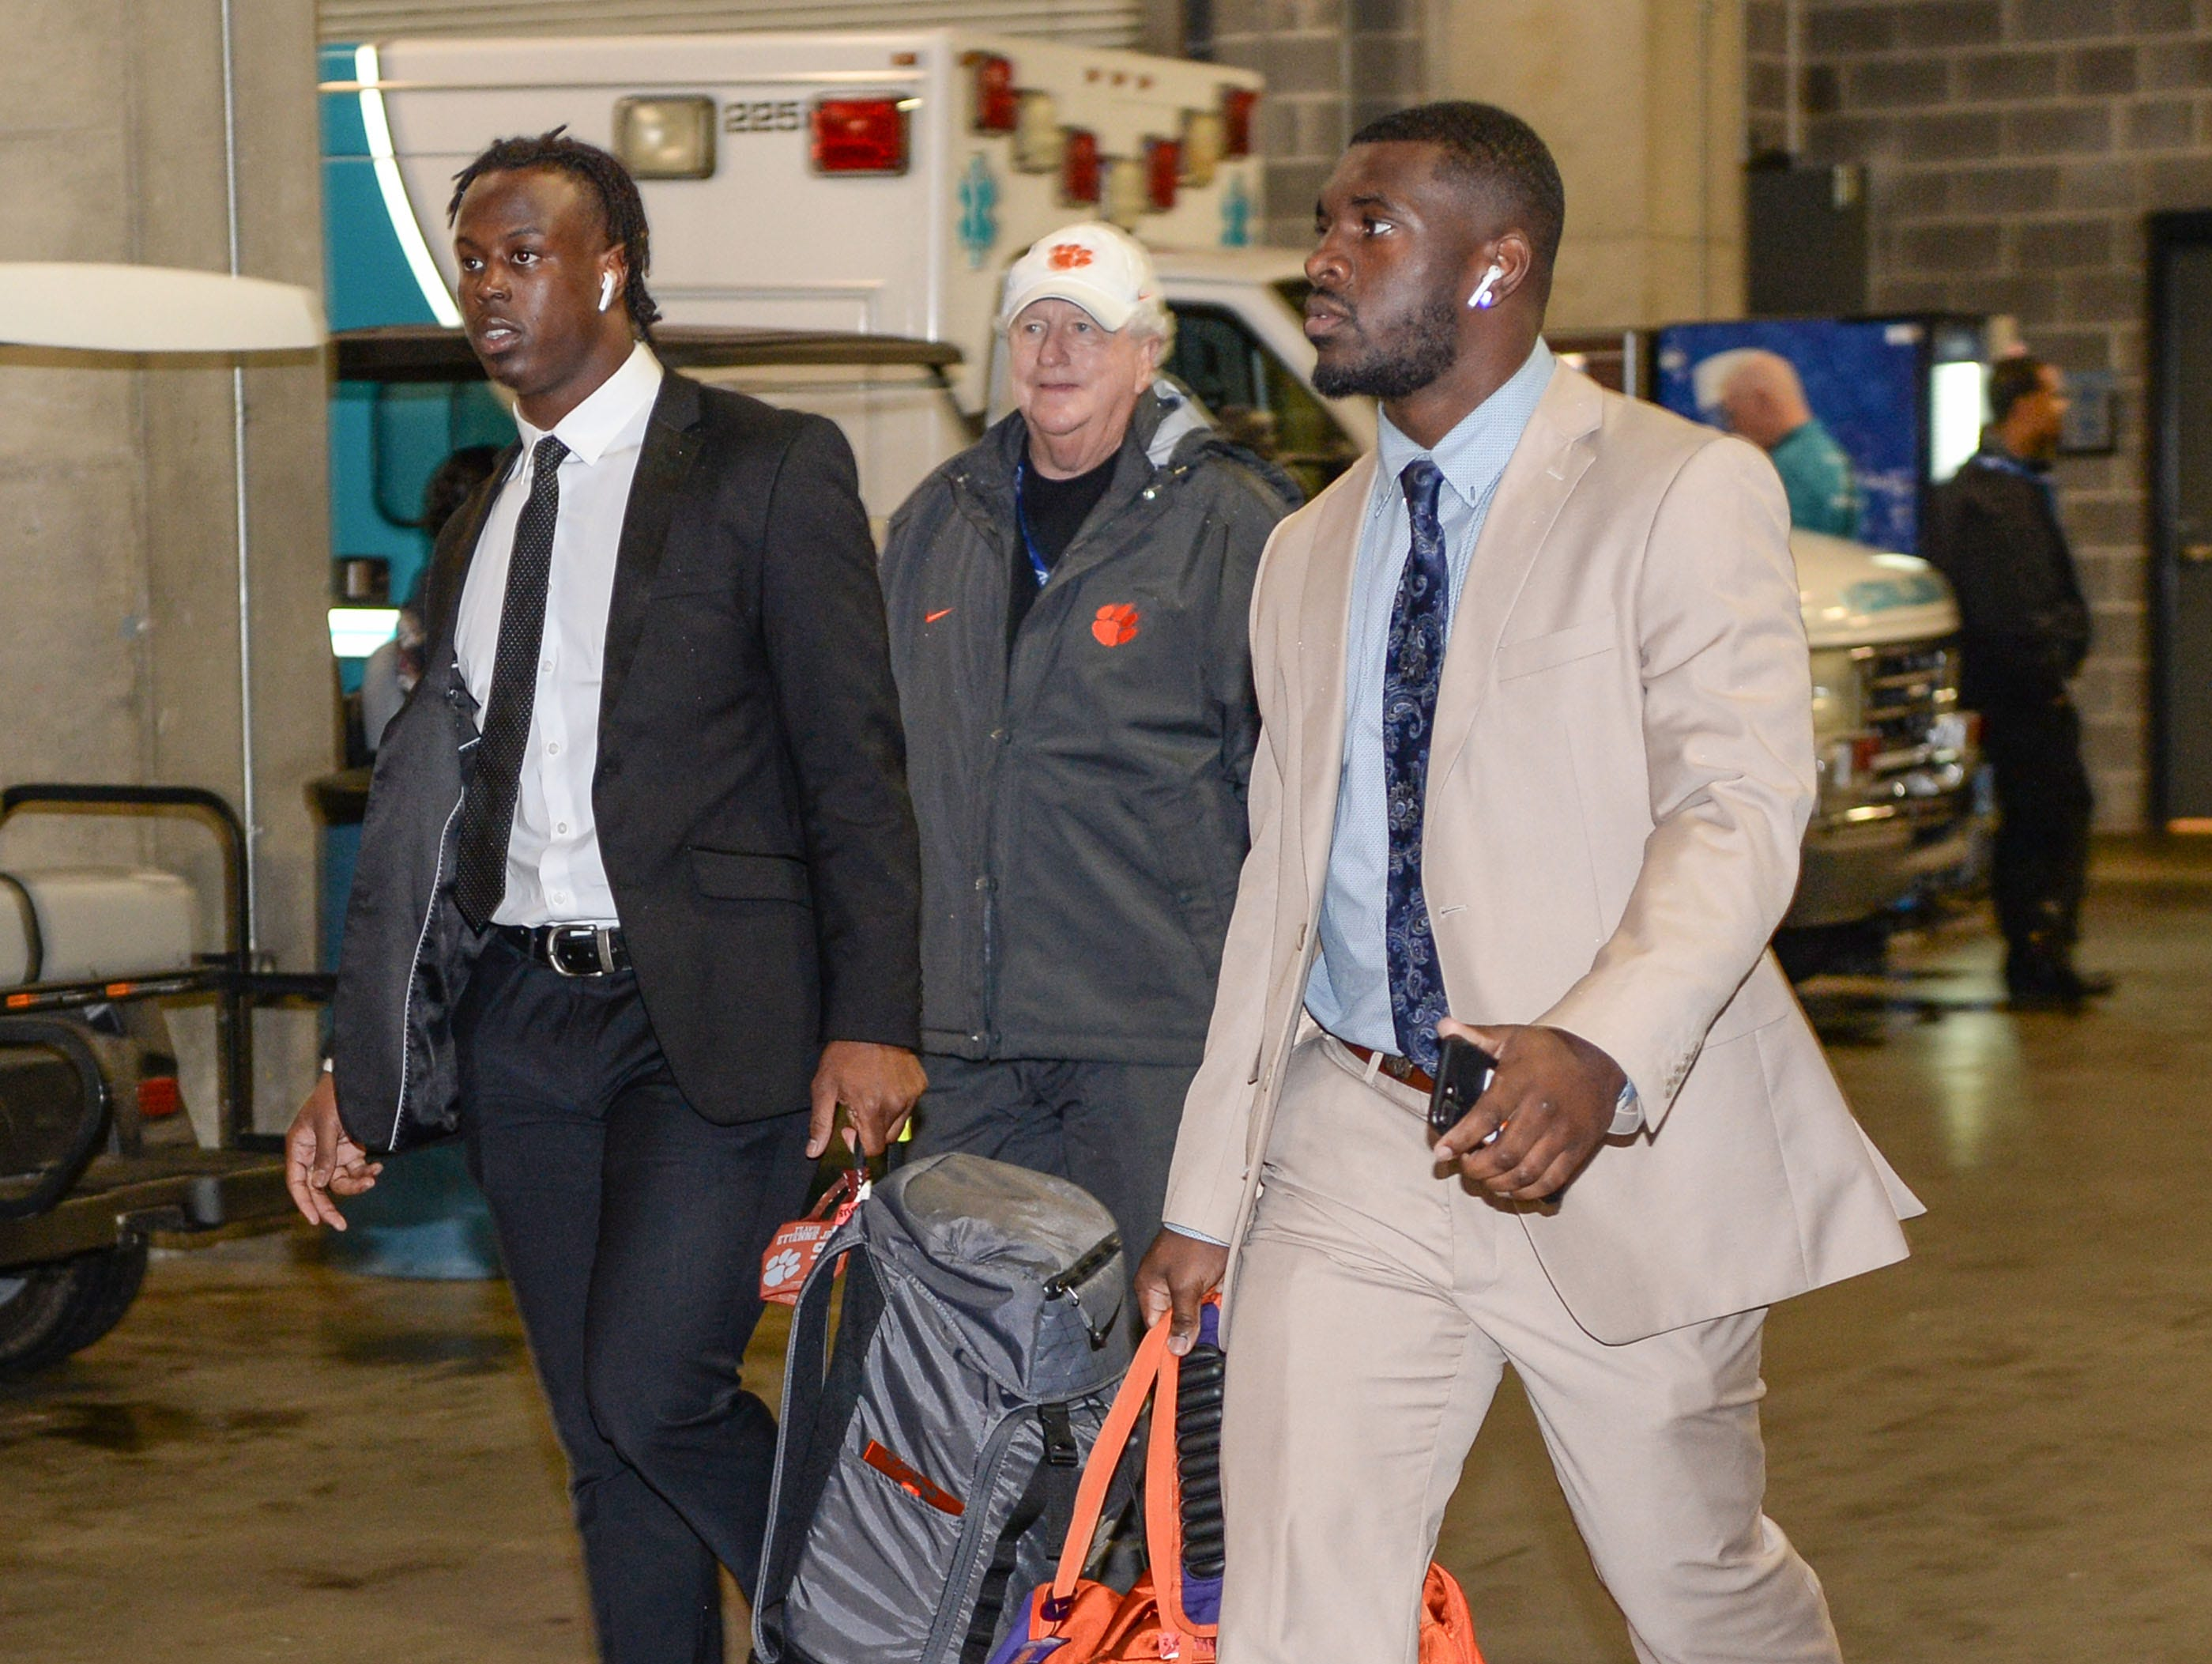 Clemson running back Travis Etienne (9) and running back Tavien Feaster (28) arrive before the game with Pittsburgh at the Dr. Pepper ACC football championship at Bank of America Stadium in Charlotte, N.C. on Saturday, December 1, 2018.